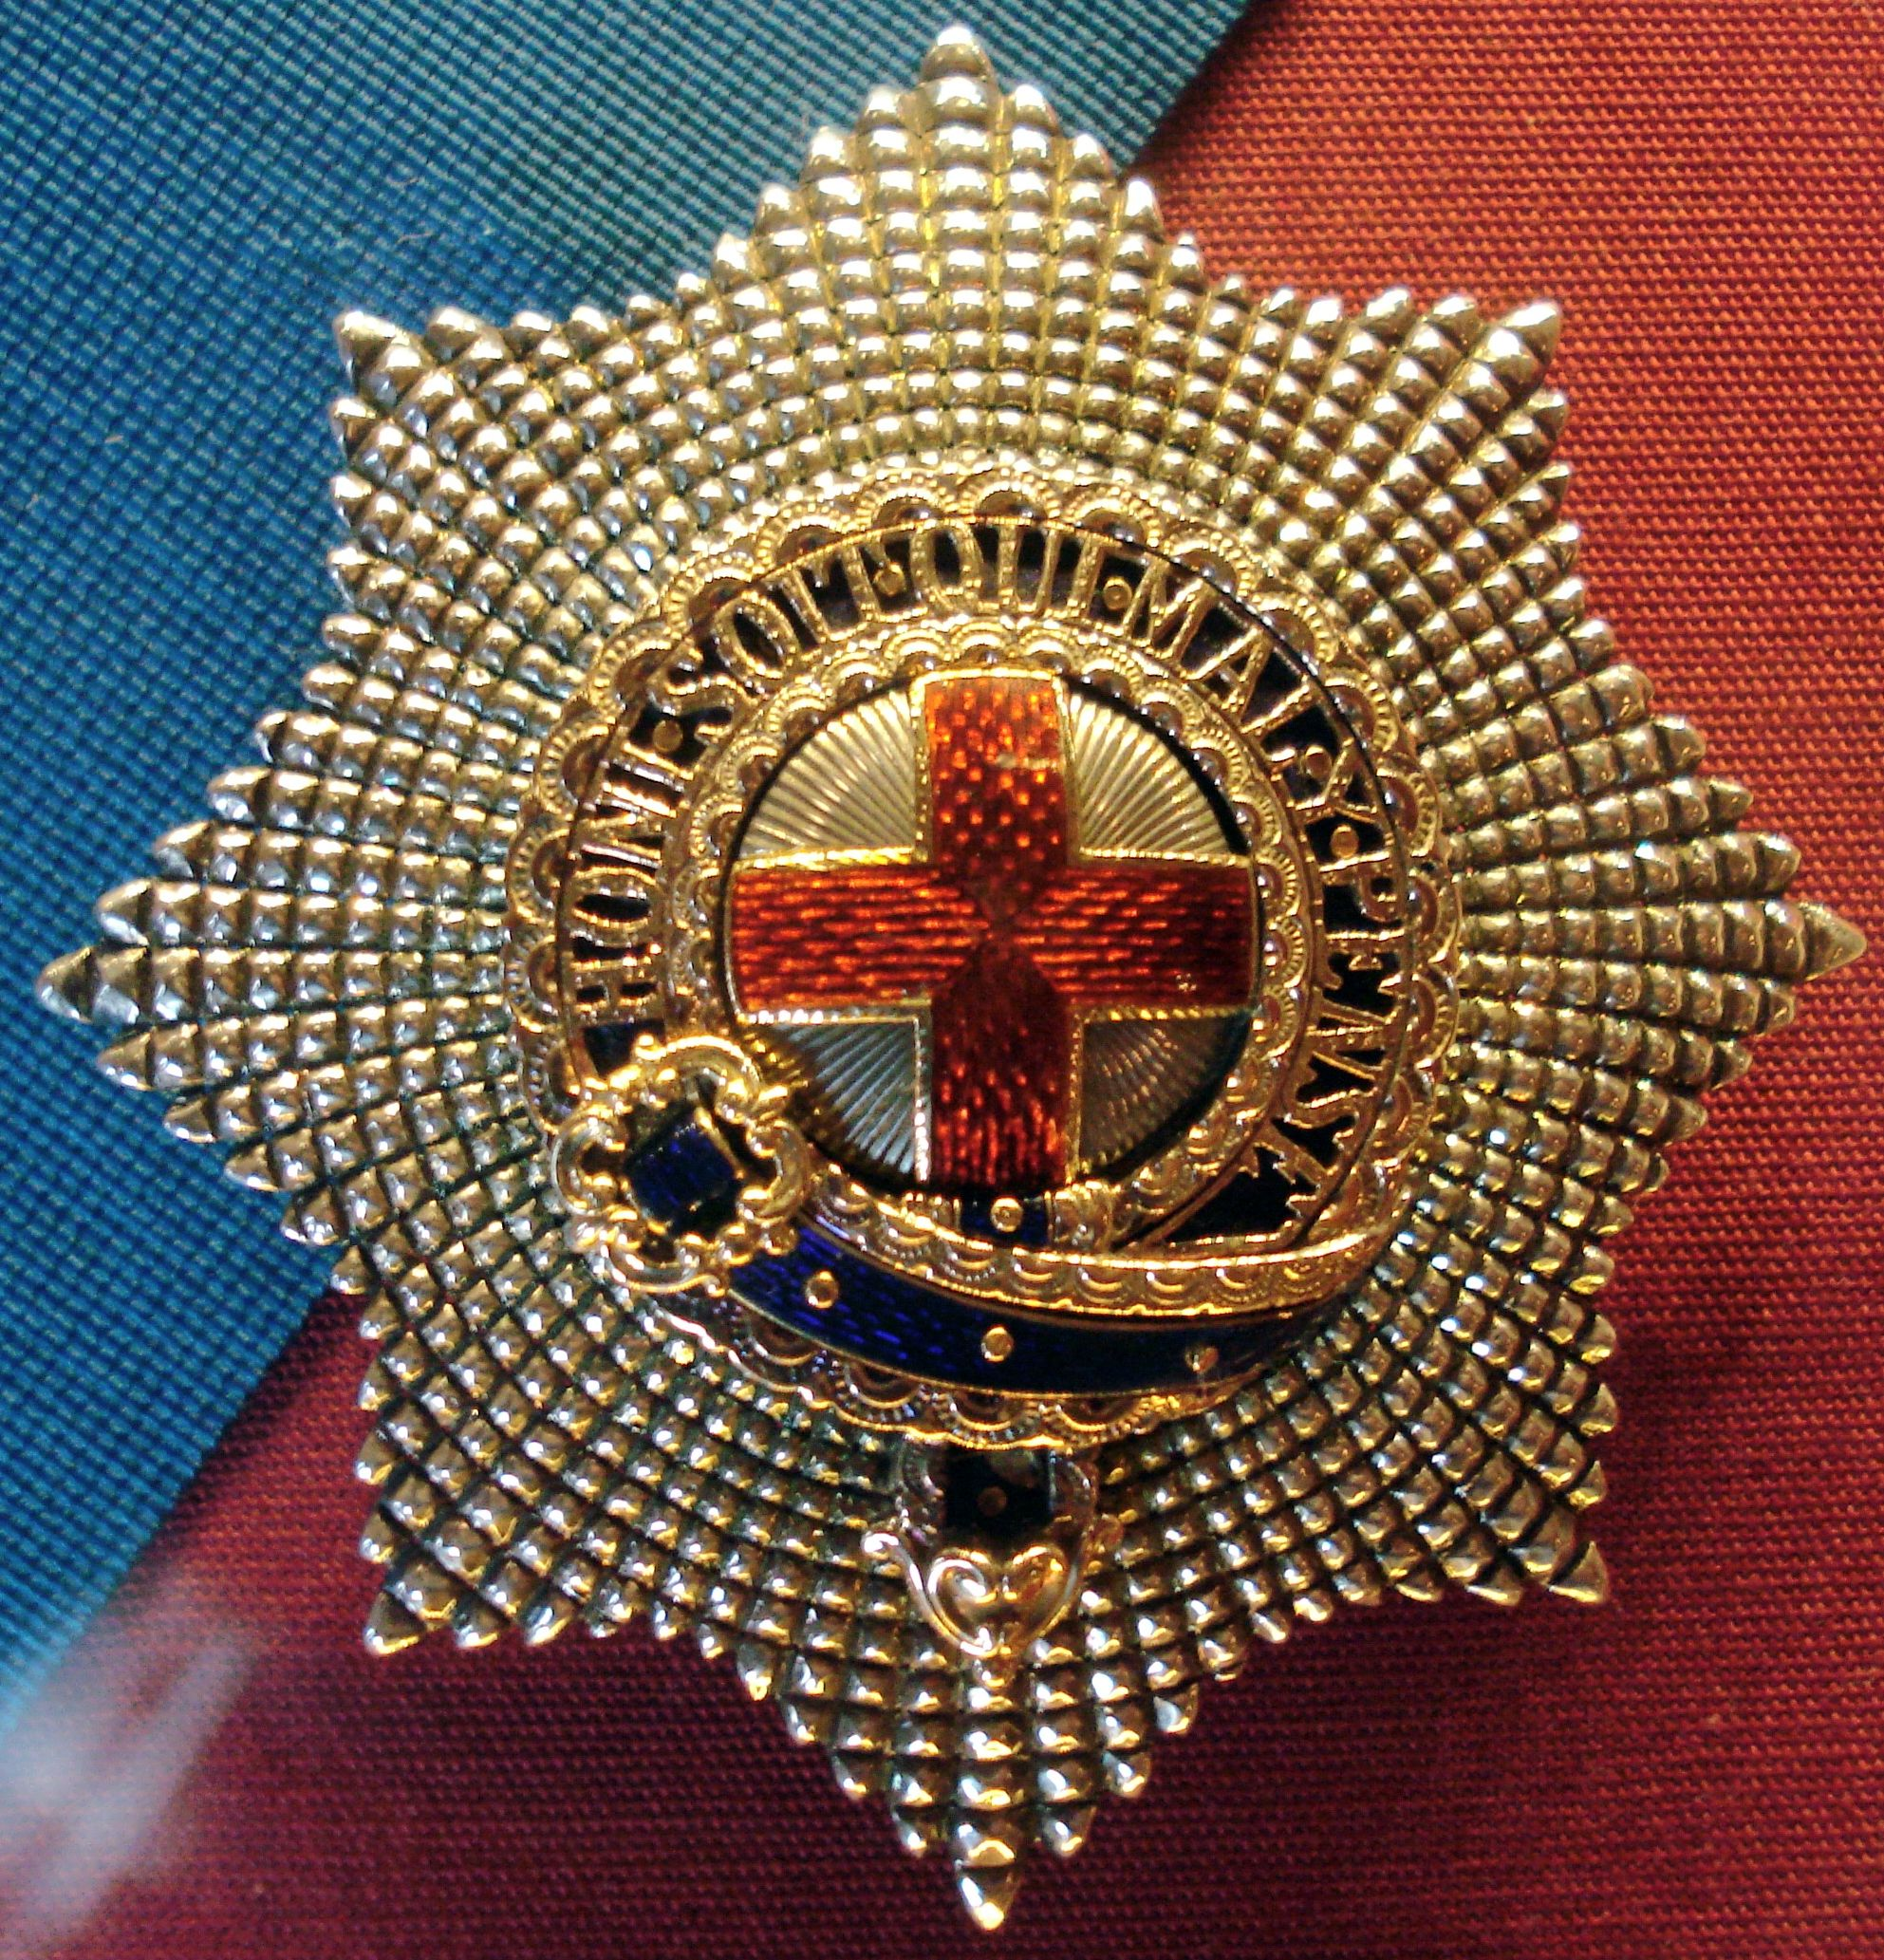 Star Of The Order Of The Garter Sapphire St George Cross Brooch British Royals Order Of The Garter British Crown Jewels Royal Jewels